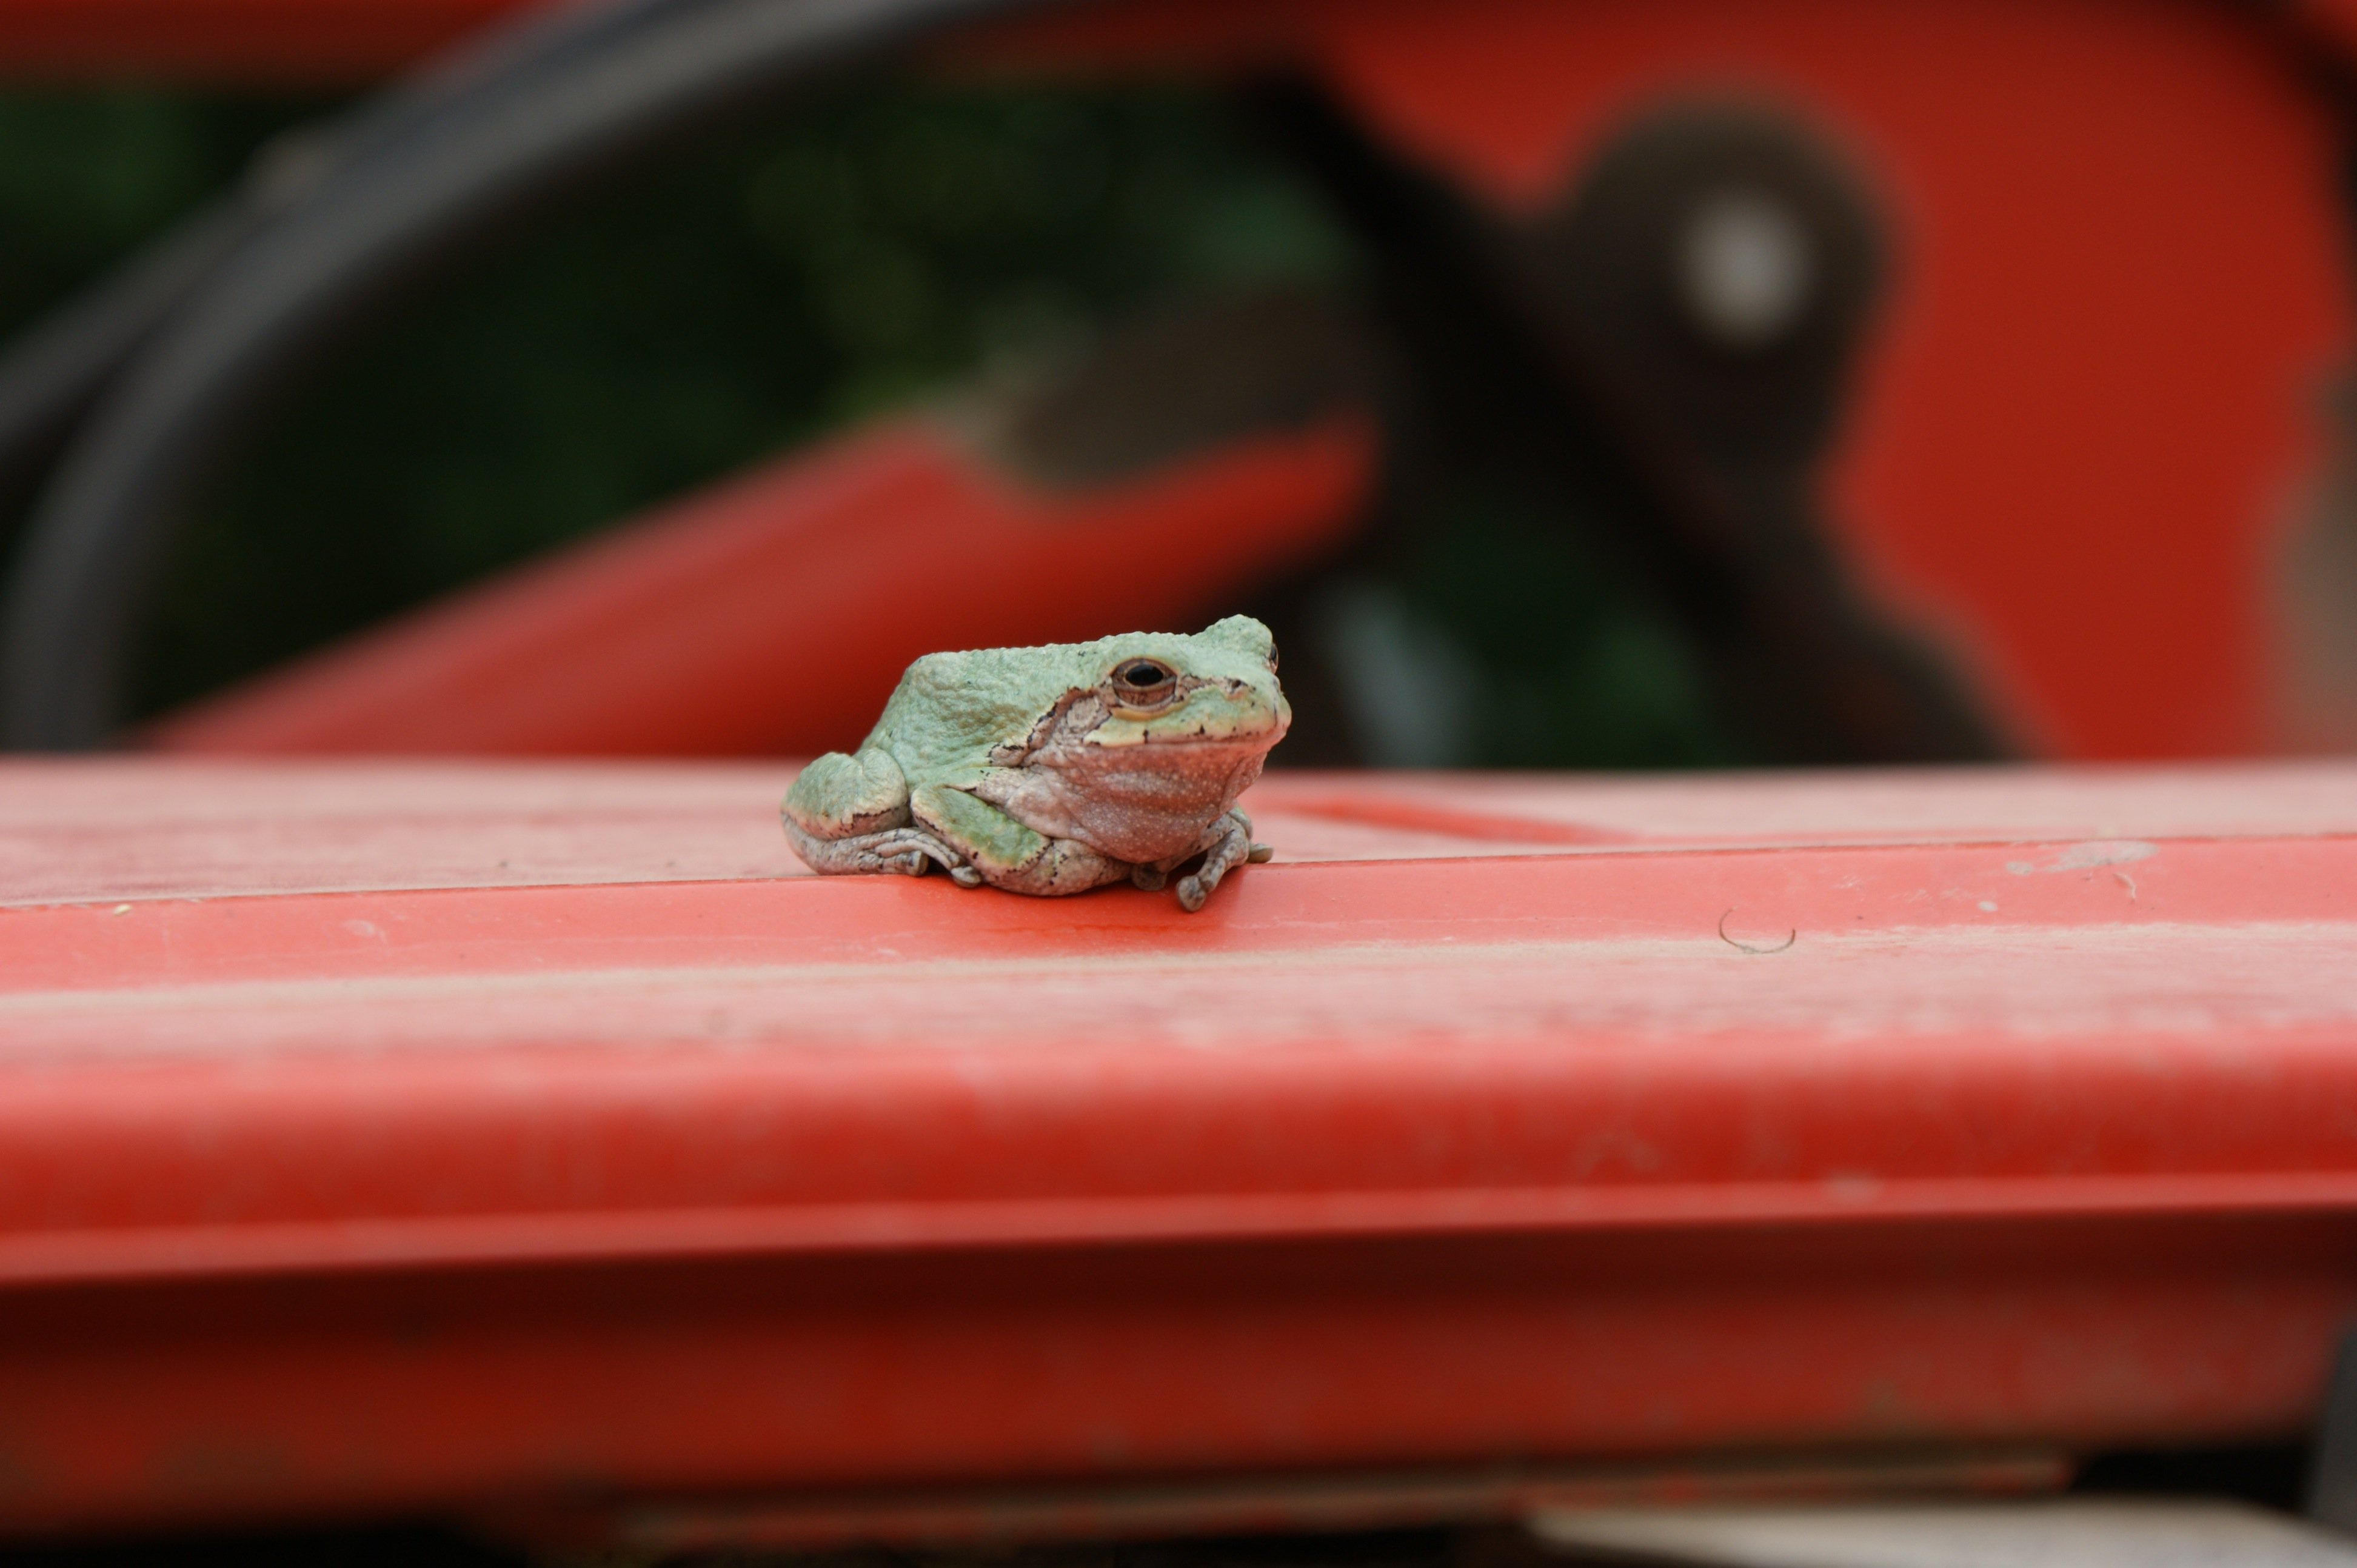 Frog on tractor